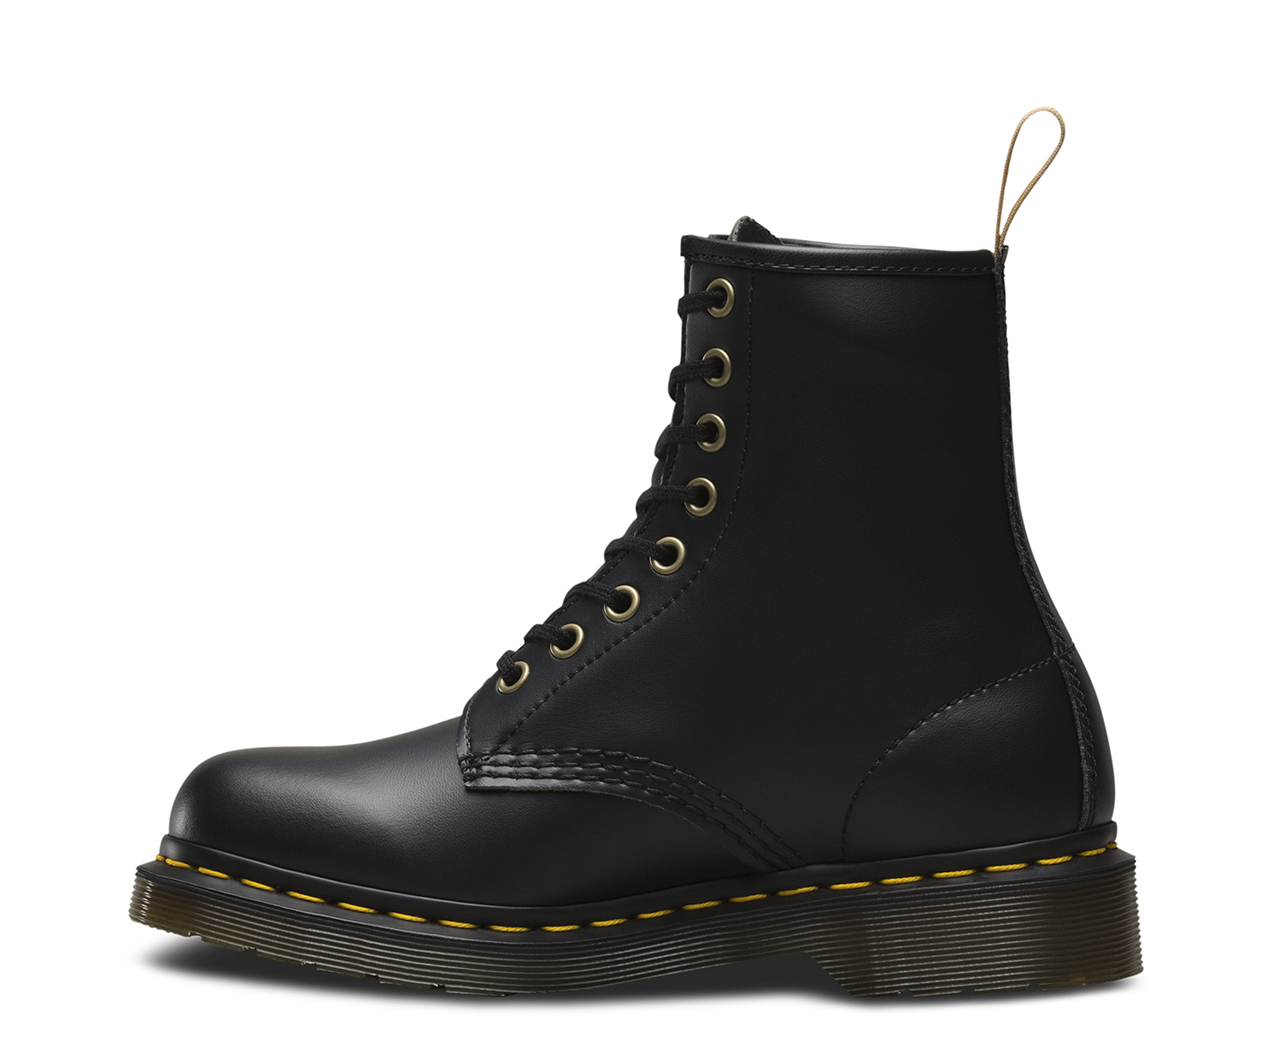 vegan 1460 felix rub off grunge tribe official dr martens store. Black Bedroom Furniture Sets. Home Design Ideas